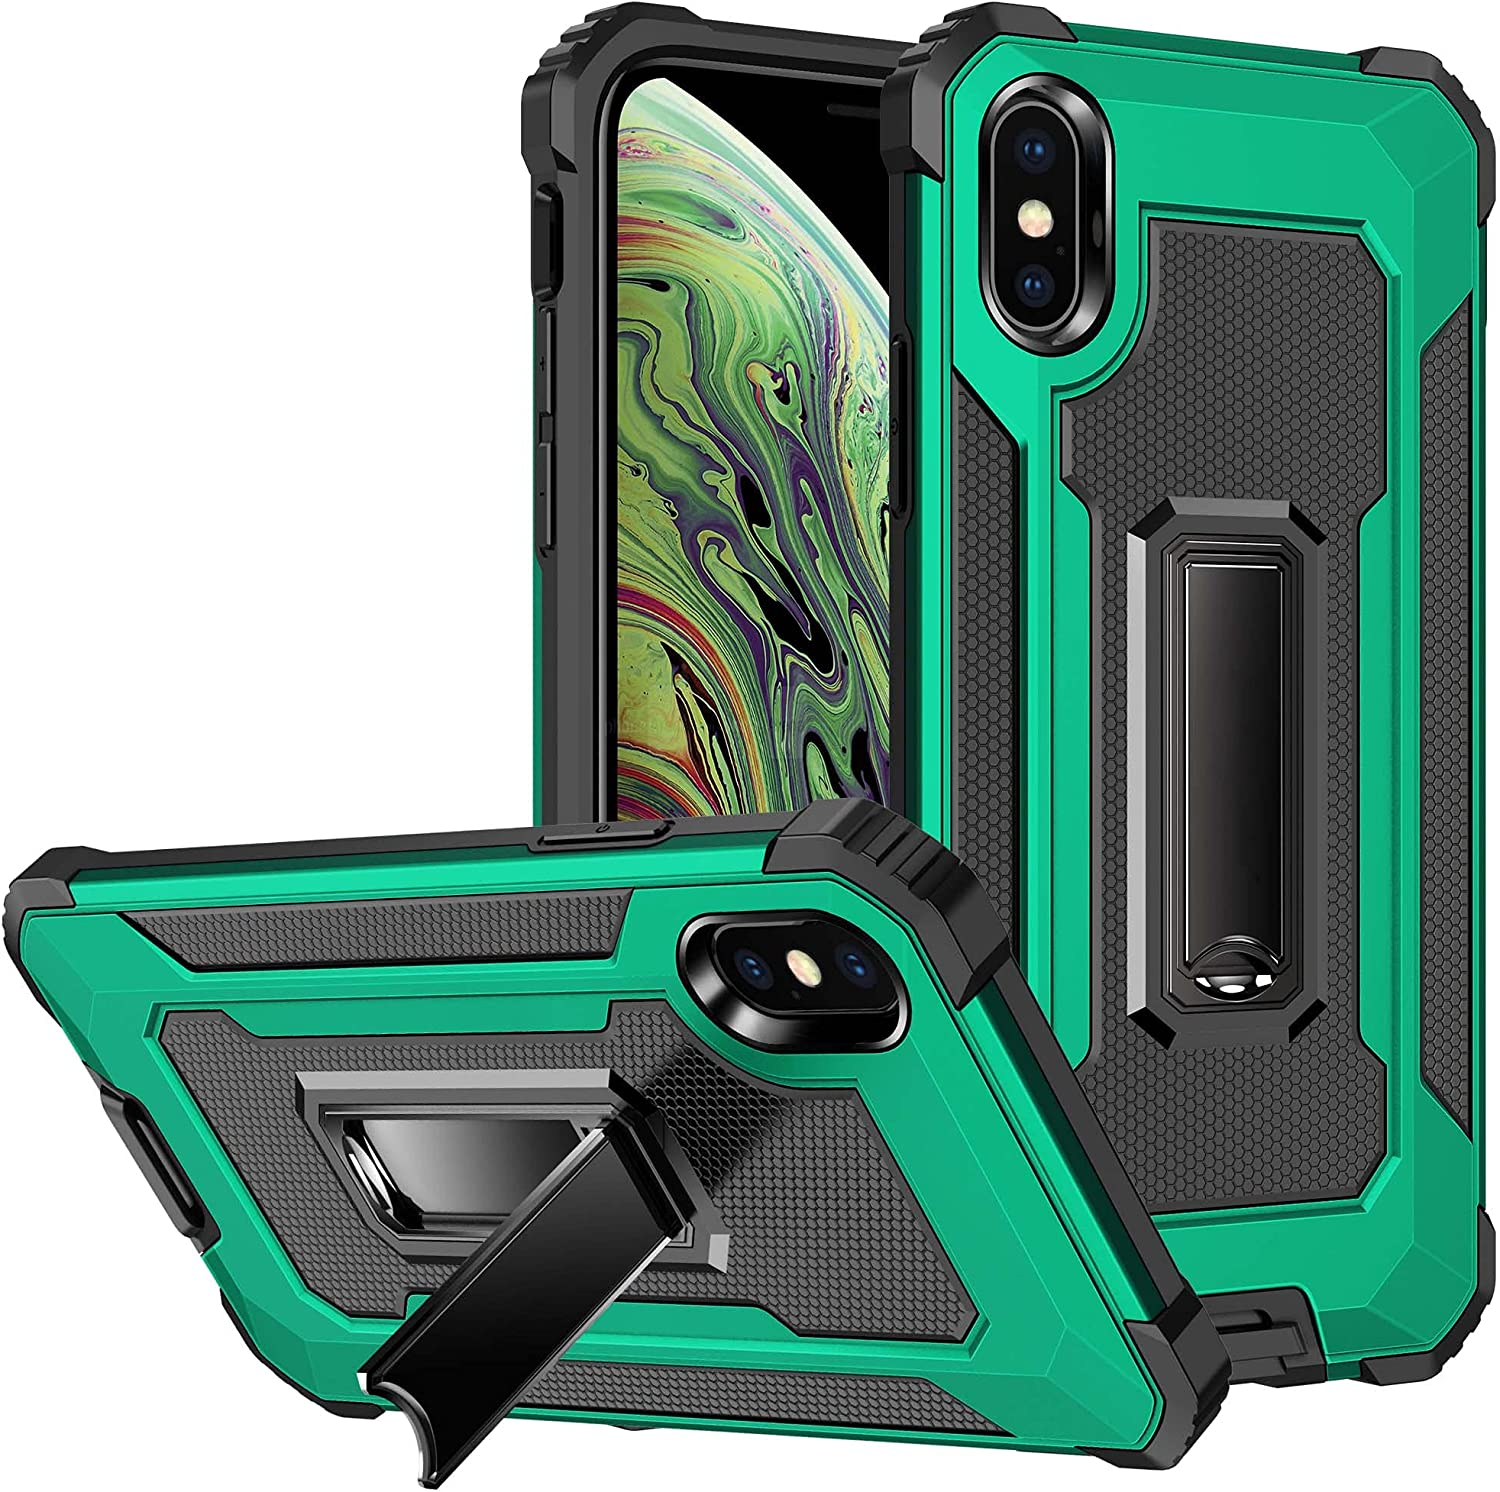 """AENLIG for iPhone X Case,iPhone Xs Case, Dual Layer Rugged Military Grade Heavy Duty Armor Shockproof Anti-Drop with Built-in Kickstand for iPhone X/XS 5.8"""" (Green)"""